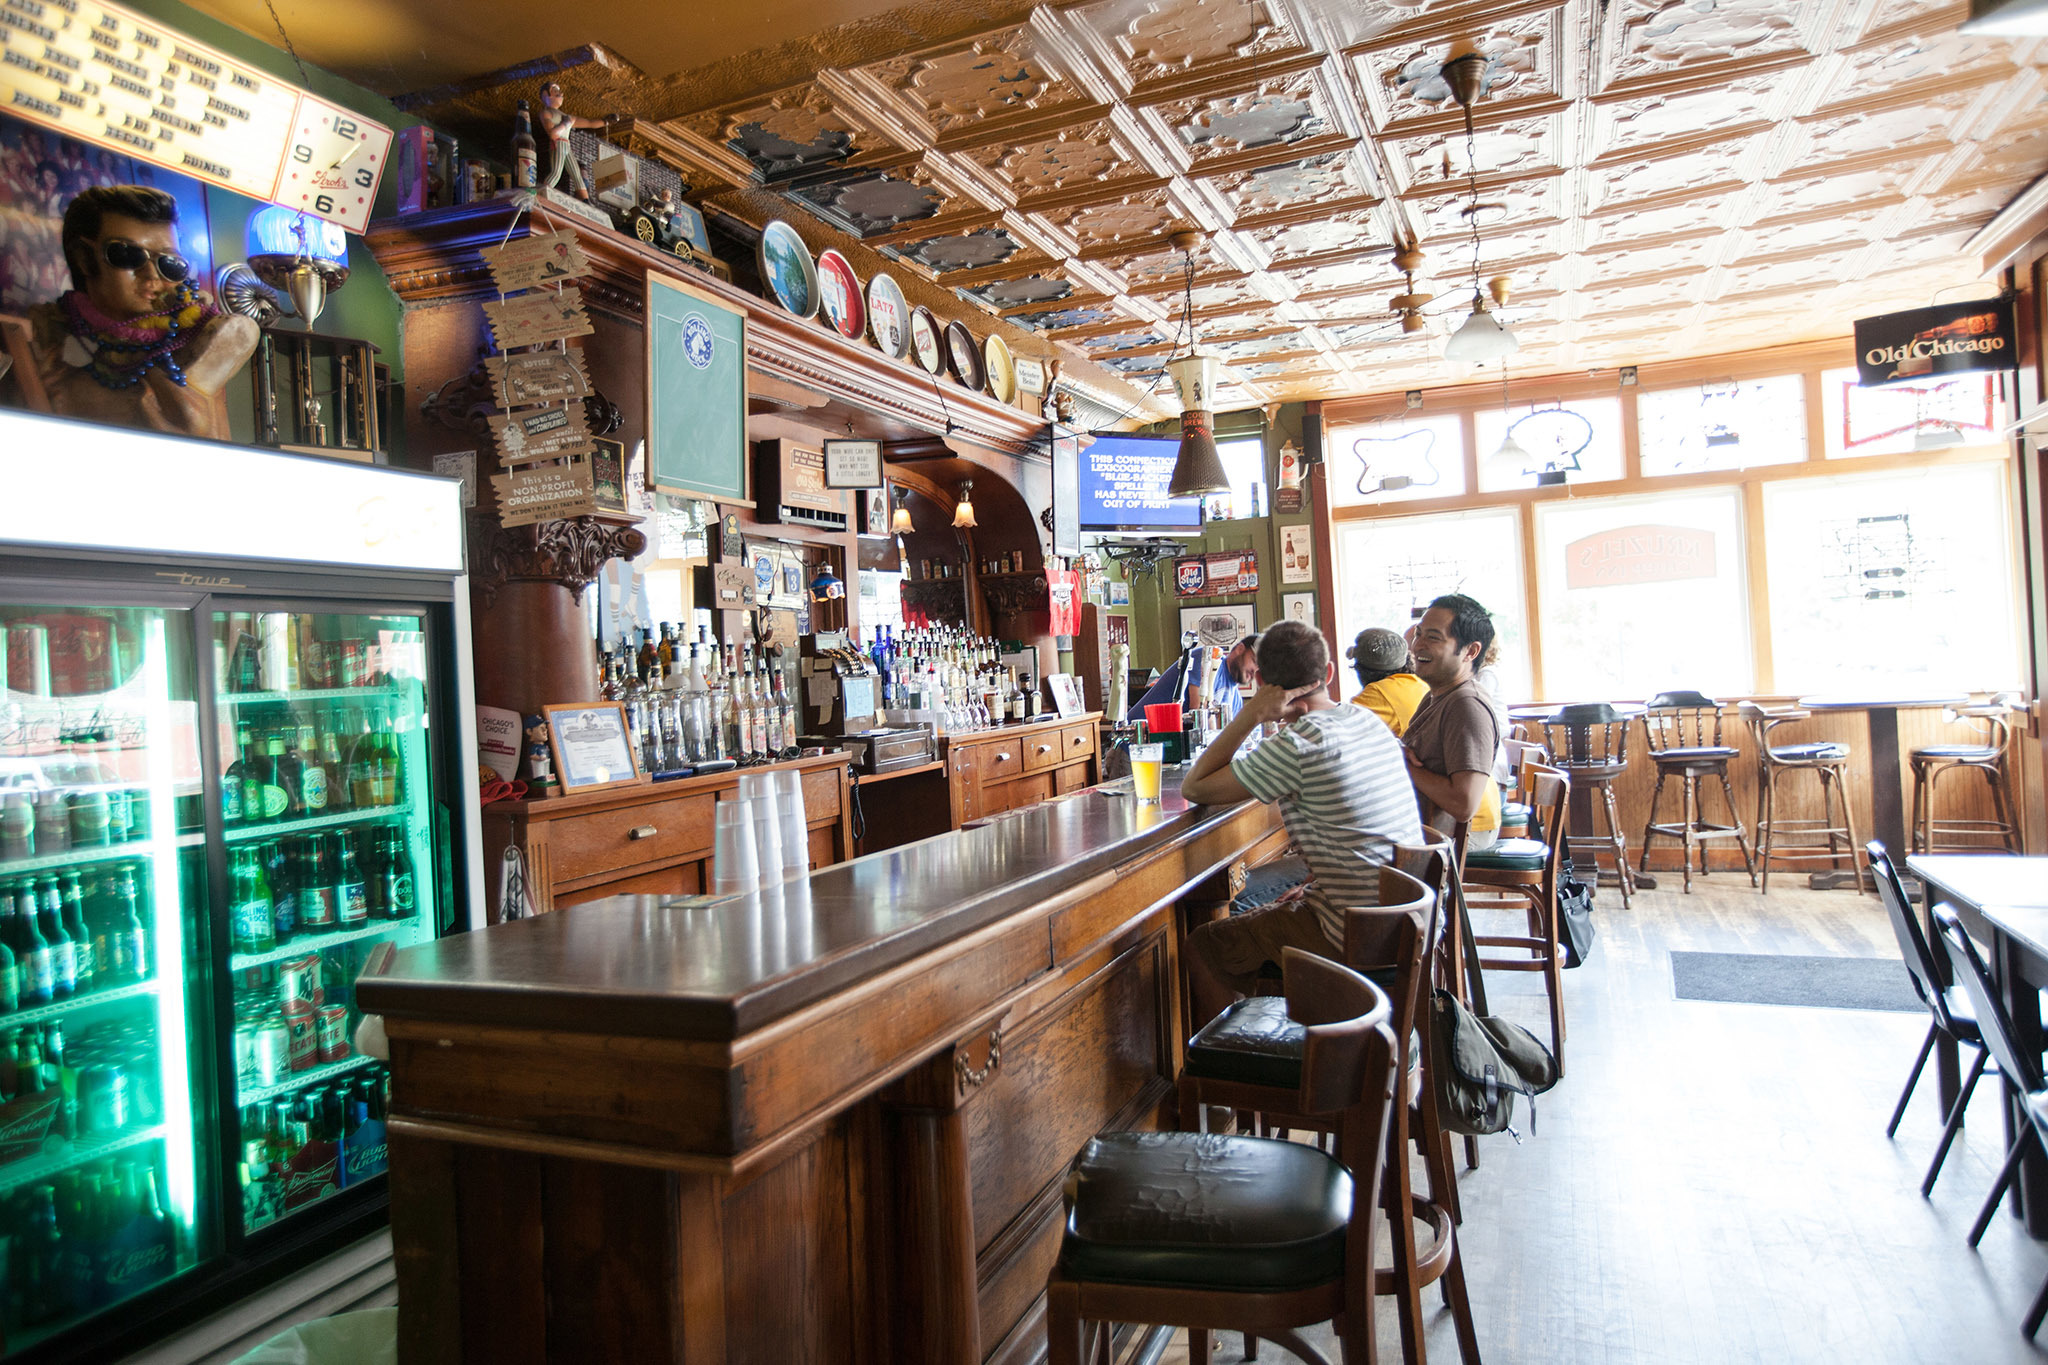 Best dive bars in Chicago